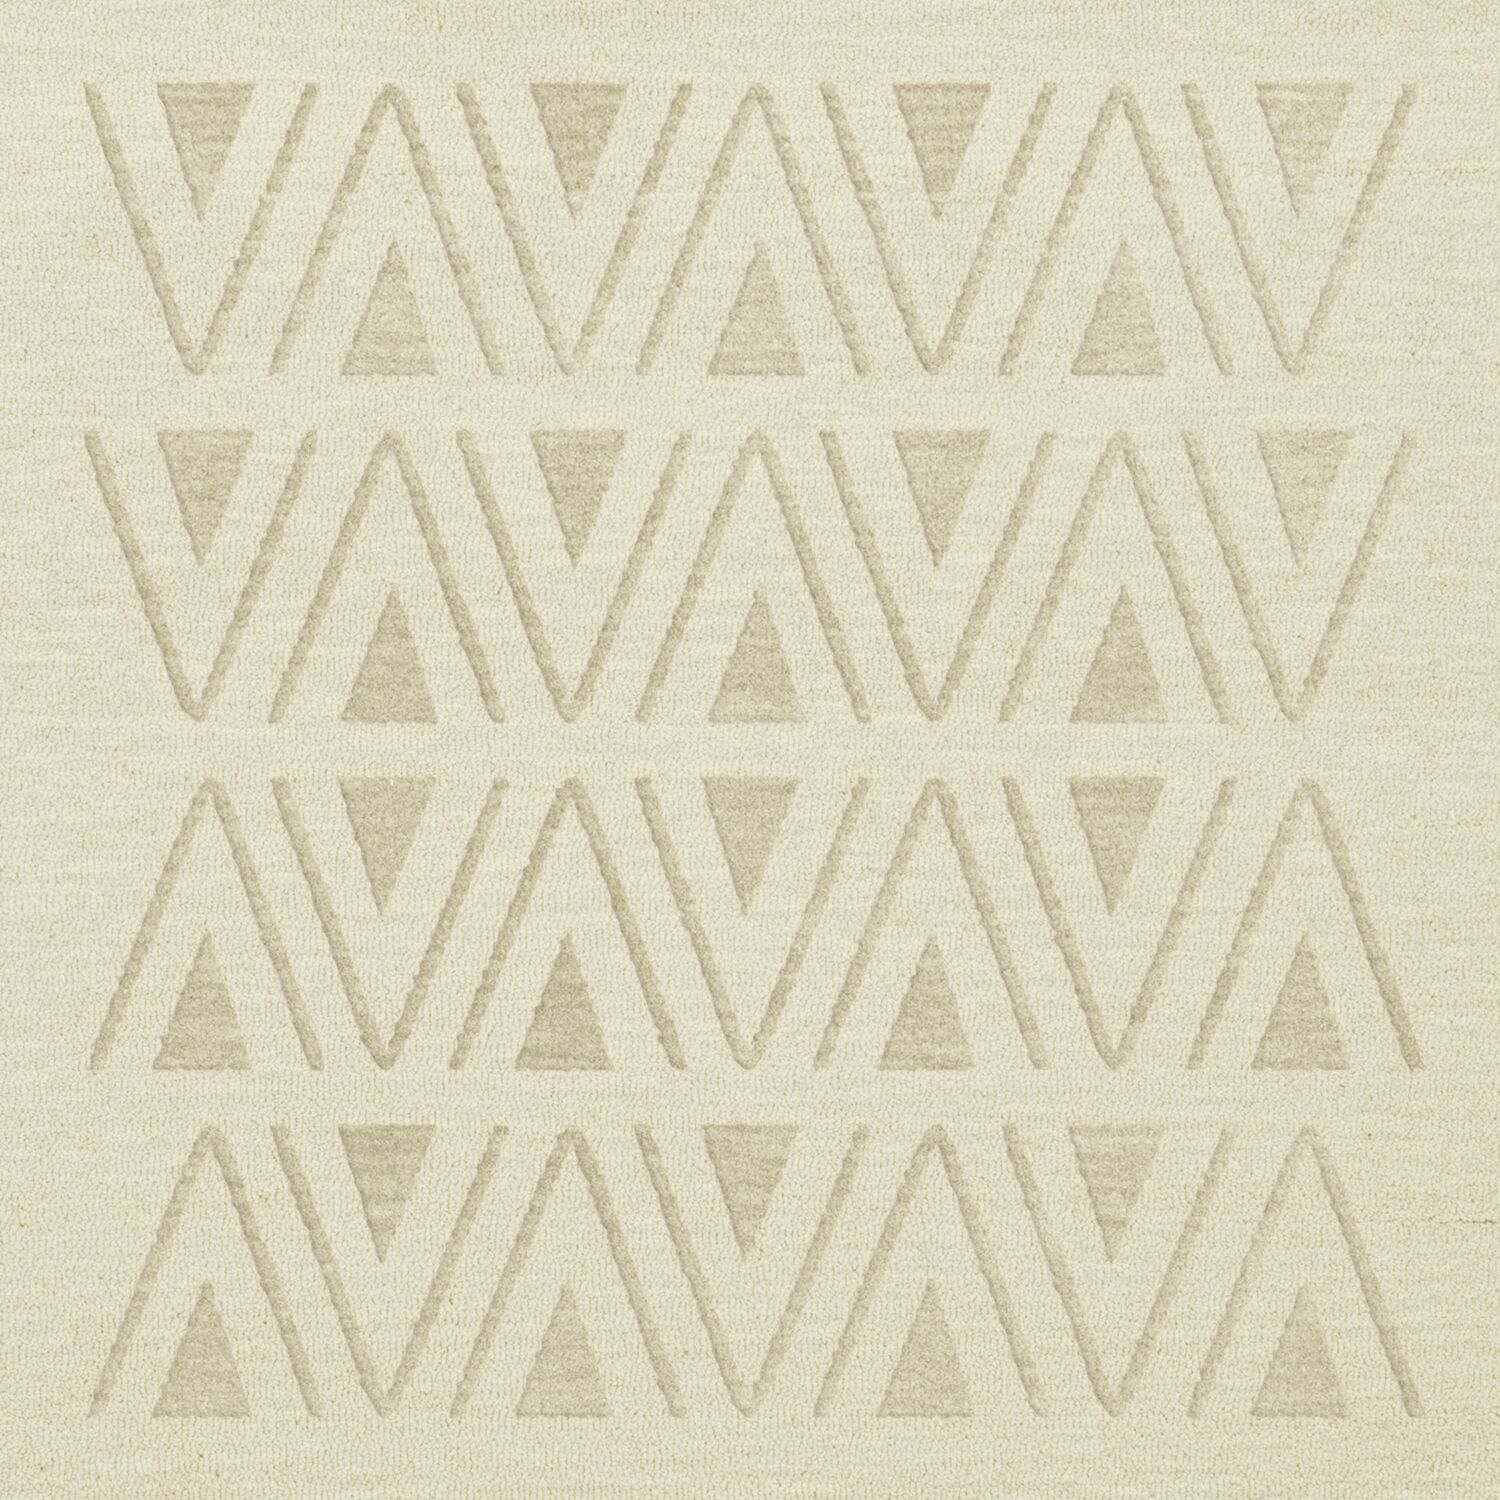 Bella Machine Woven Wool White Area Rug Rug Size: Square 6'